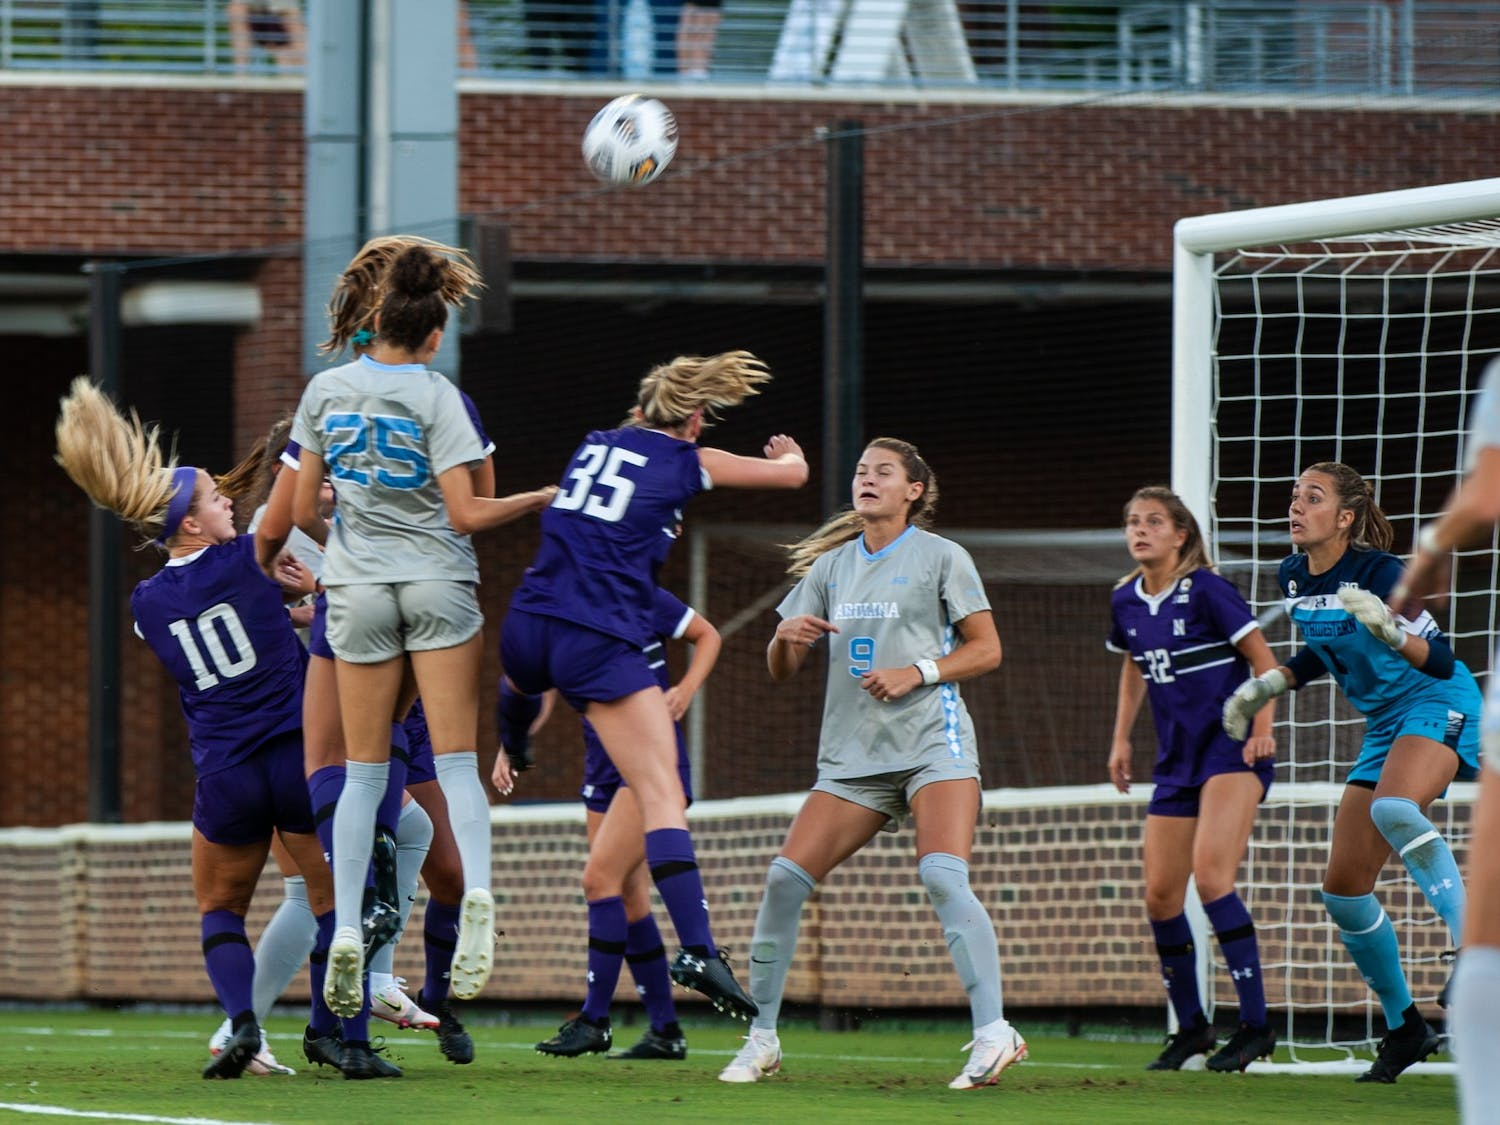 UNC women's soccer team scores a goal against Northwestern at the home game on Sept 2. UNC won 2-0.